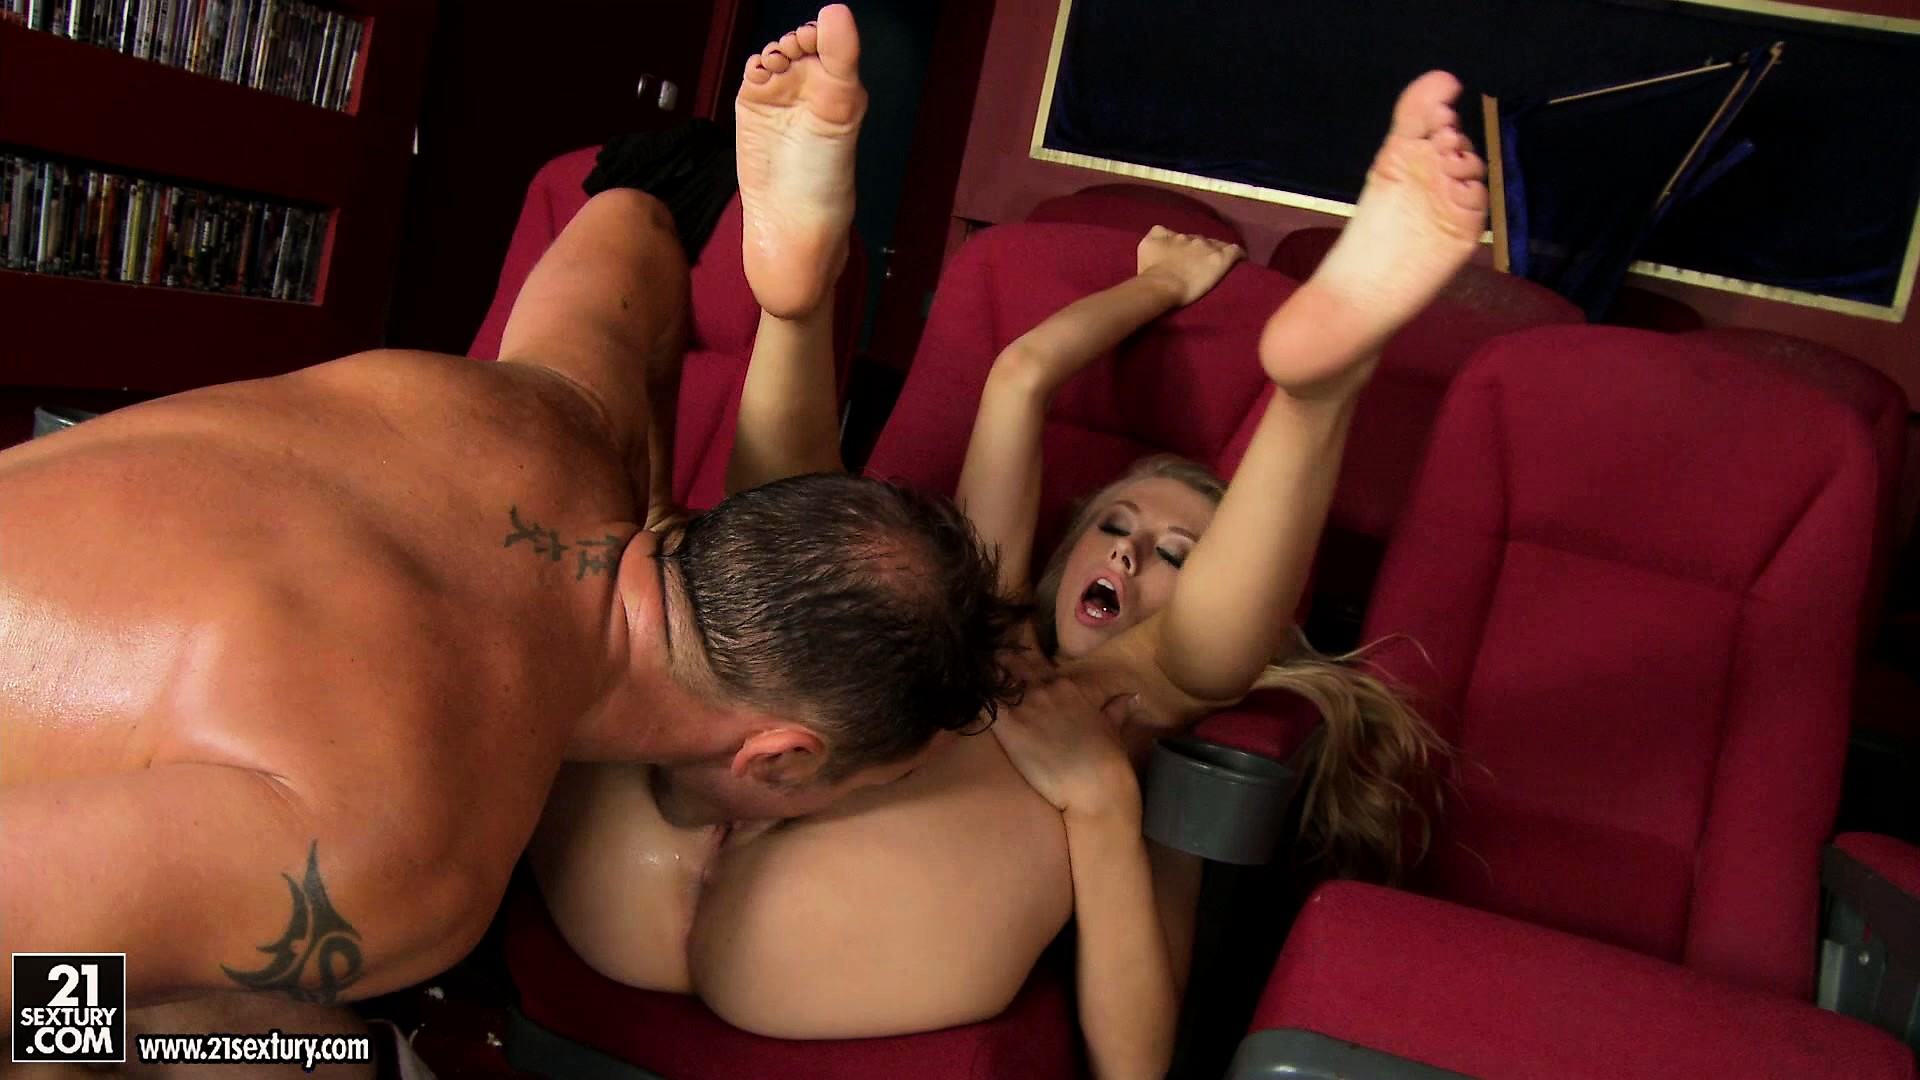 Porno Video of He Fucks Her Pussy Deep And Sucks Her Toes And She Sighs With Intense Pleasure